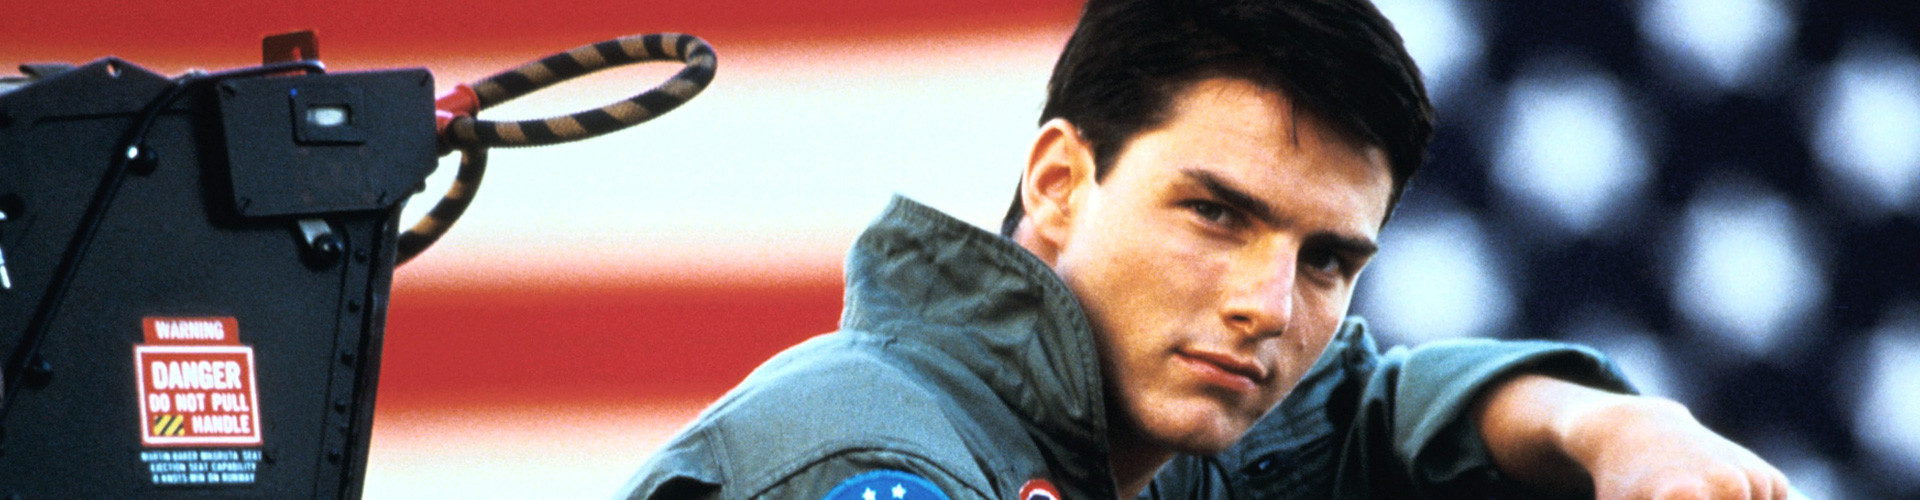 top-gun-header.jpg